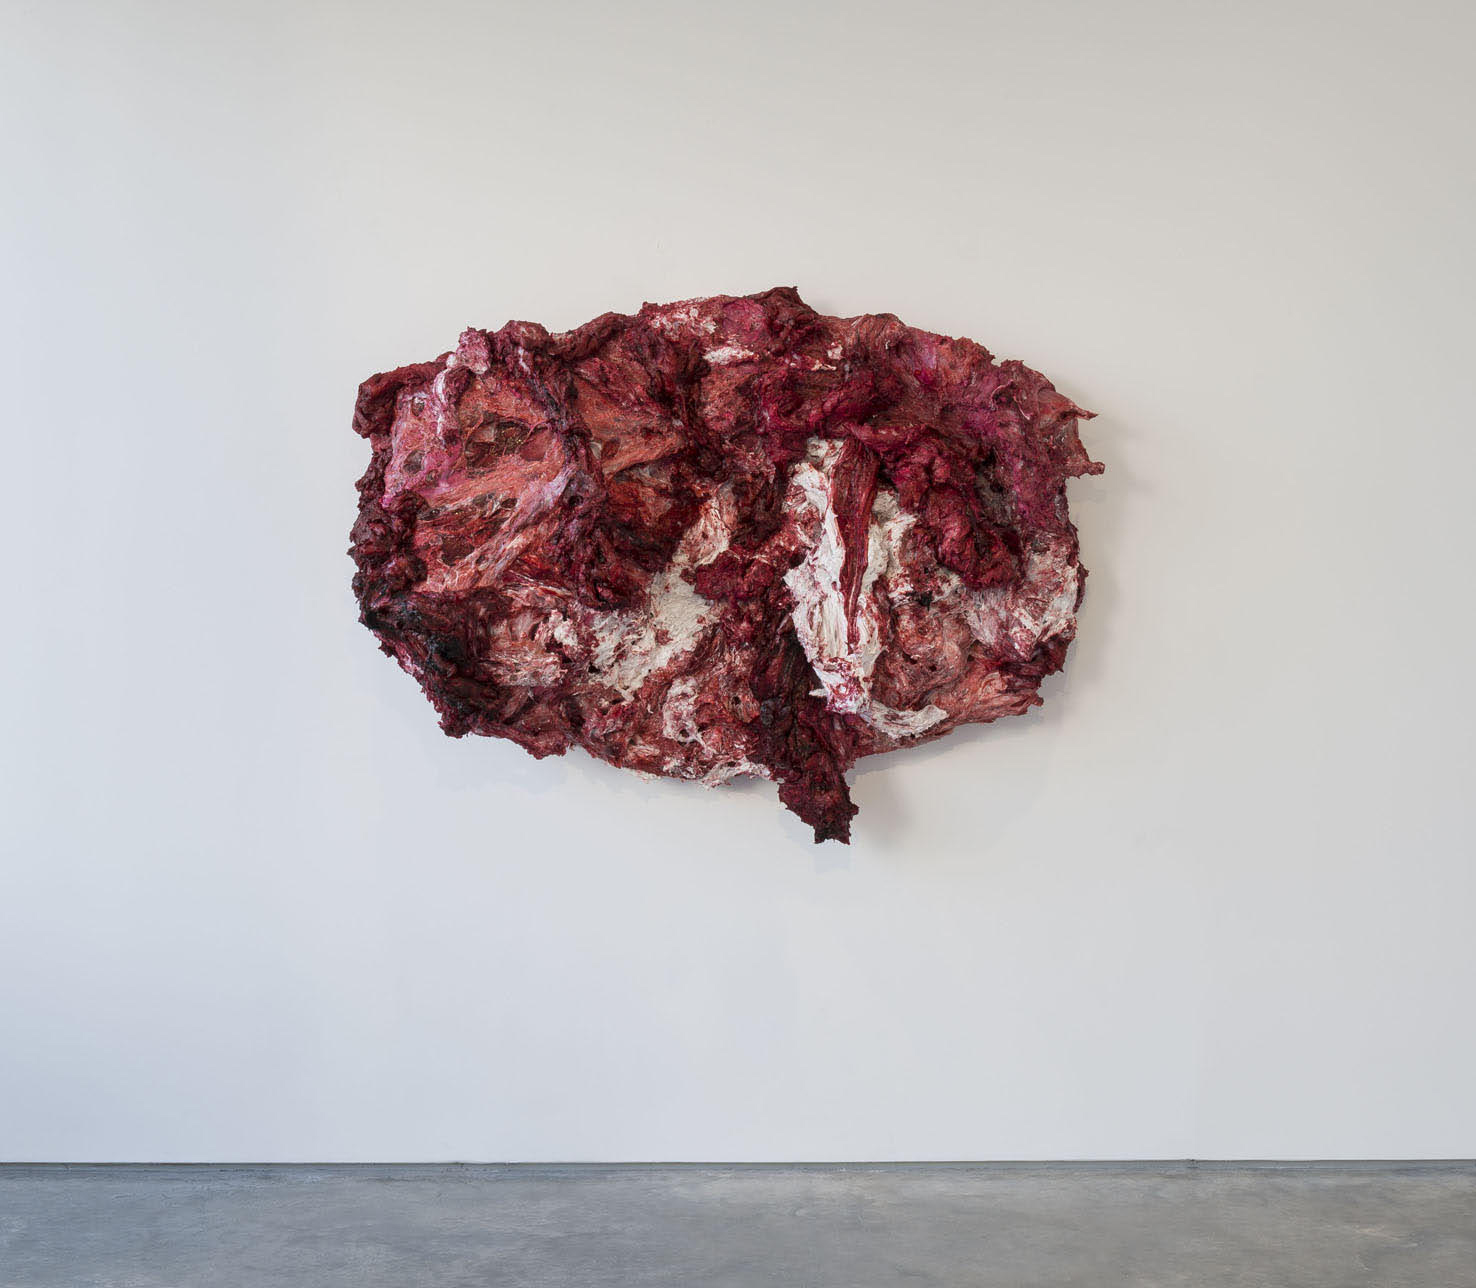 Anish Kapoor <em>Disrobe</em>, 2013. Silicone and pigment 140 x 188 x 55 cm © the artist; Courtesy, Lisson Gallery, London (image ref #: KAPO150015)